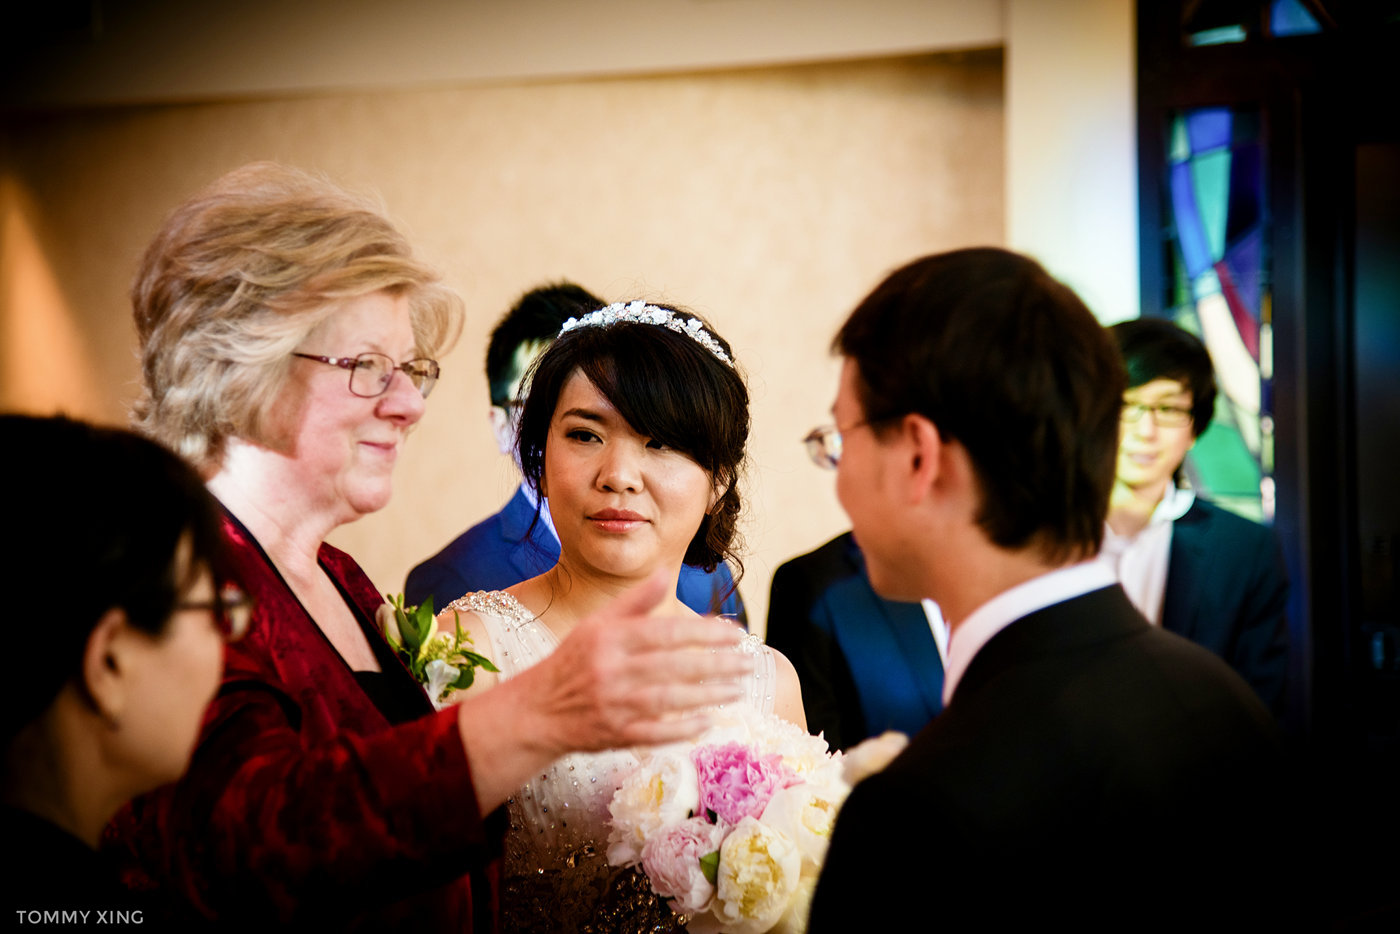 Qinglu Meng & Daozheng Chen Wedding Slideshow-116-E.JPG